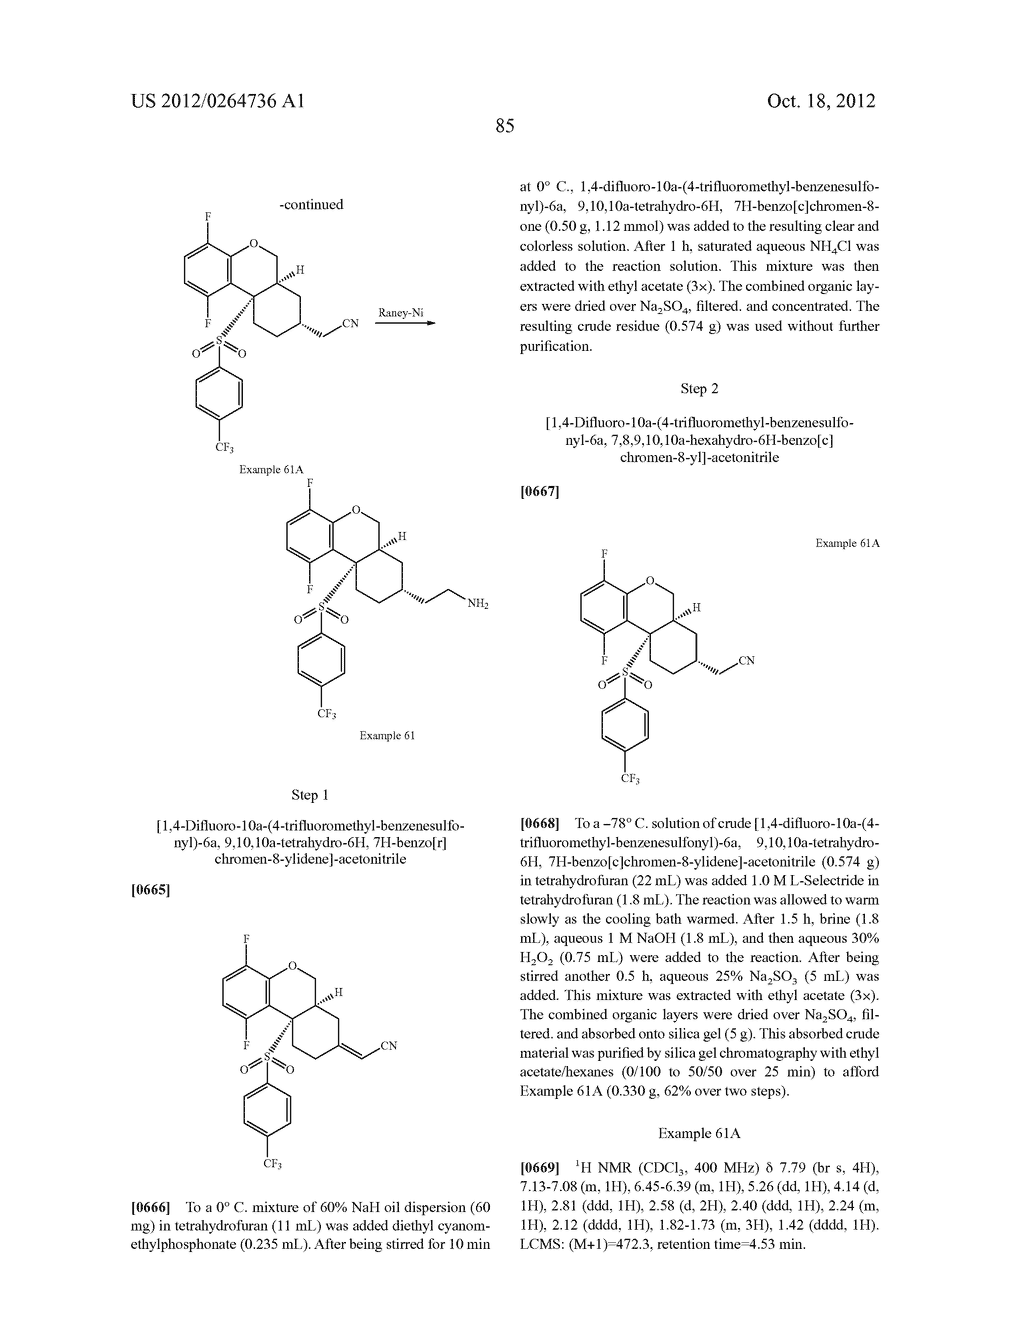 BENZENESULFONYL-CHROMANE, THIOCHROMANE, TETRAHYDRONAPHTHALENE AND RELATED     GAMMA SECRETASE INHIBITORS - diagram, schematic, and image 86